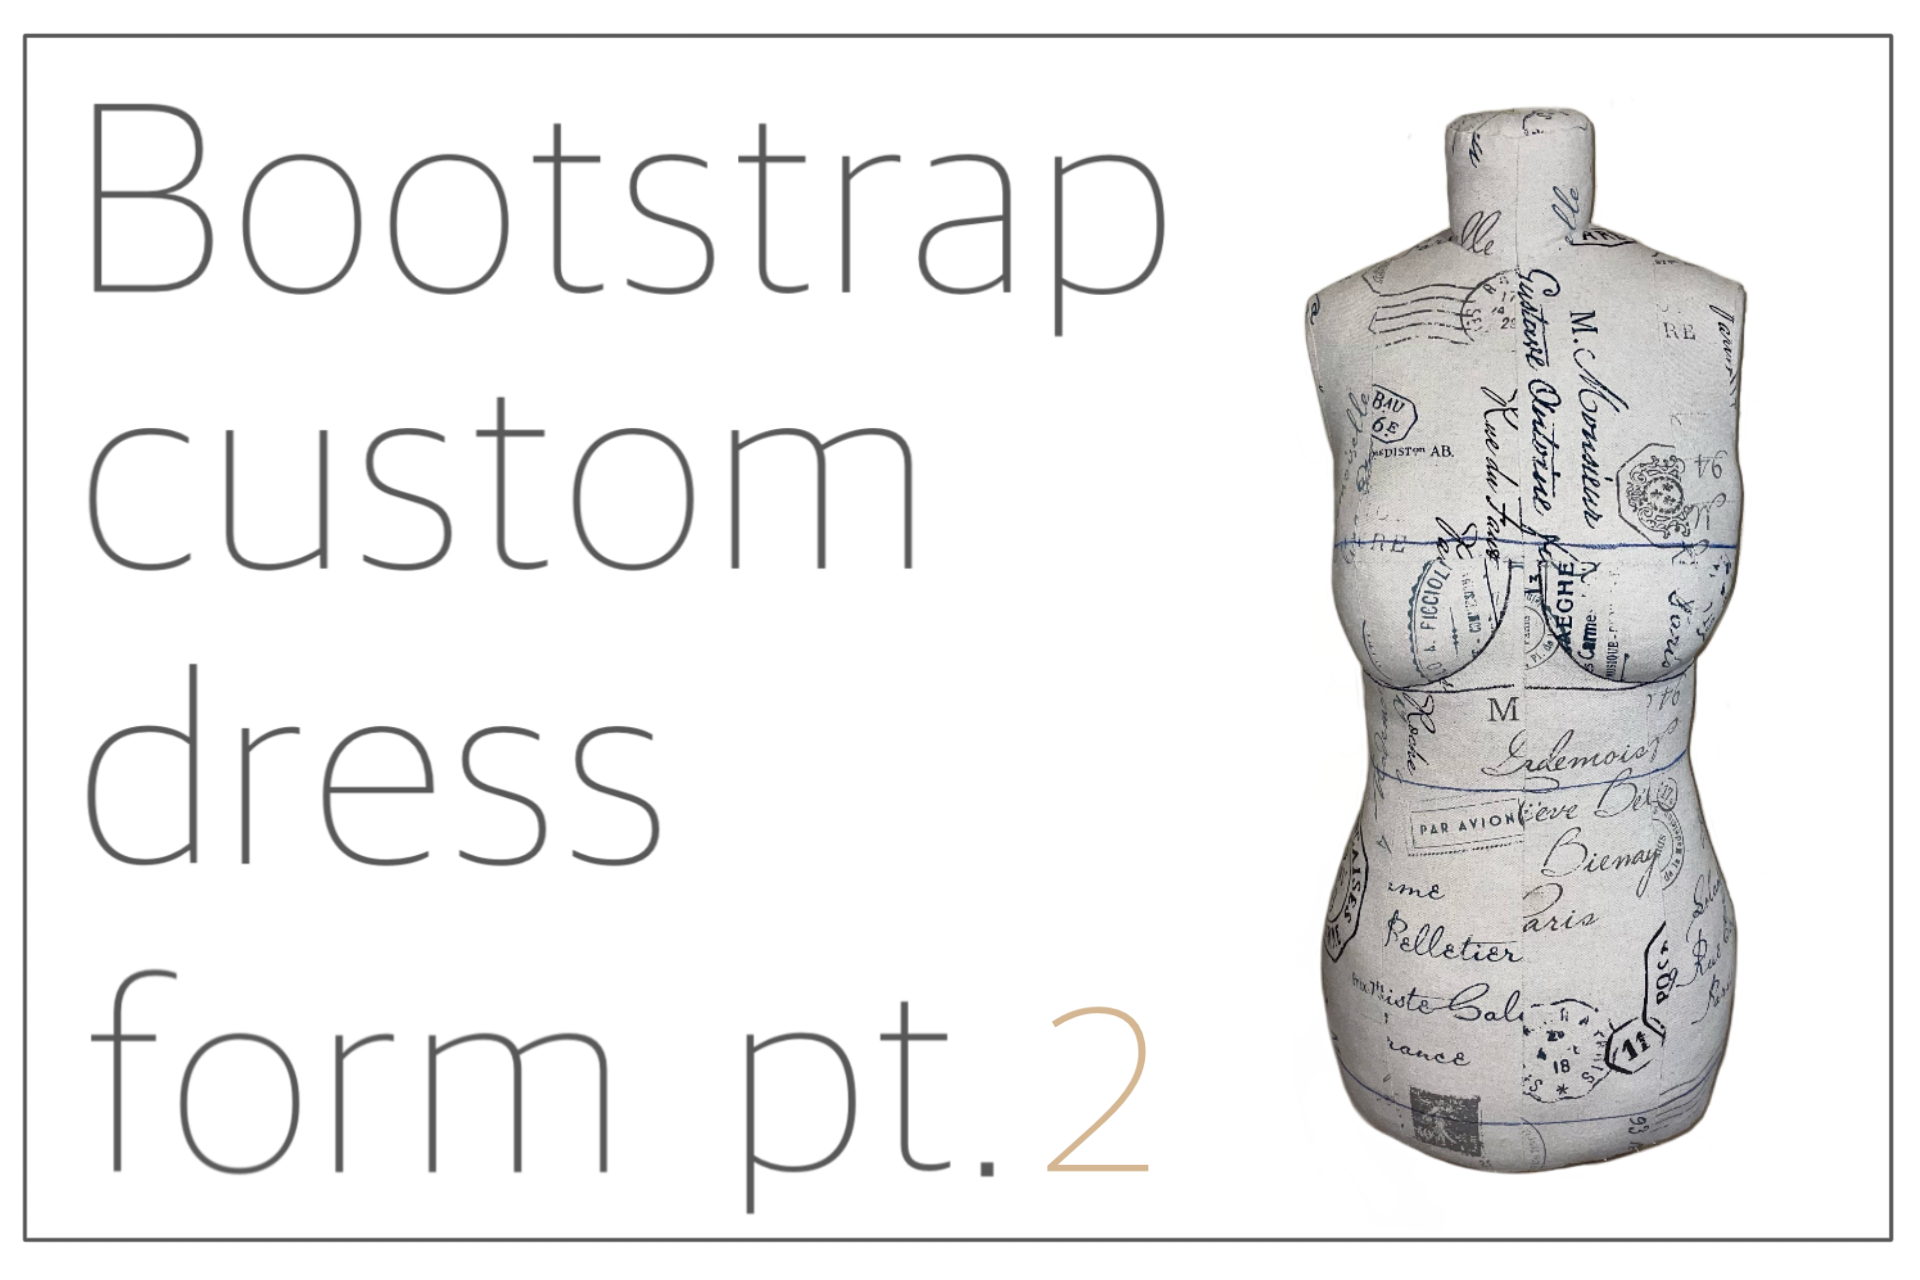 You are currently viewing Bootstrap custom dress form pt. 2